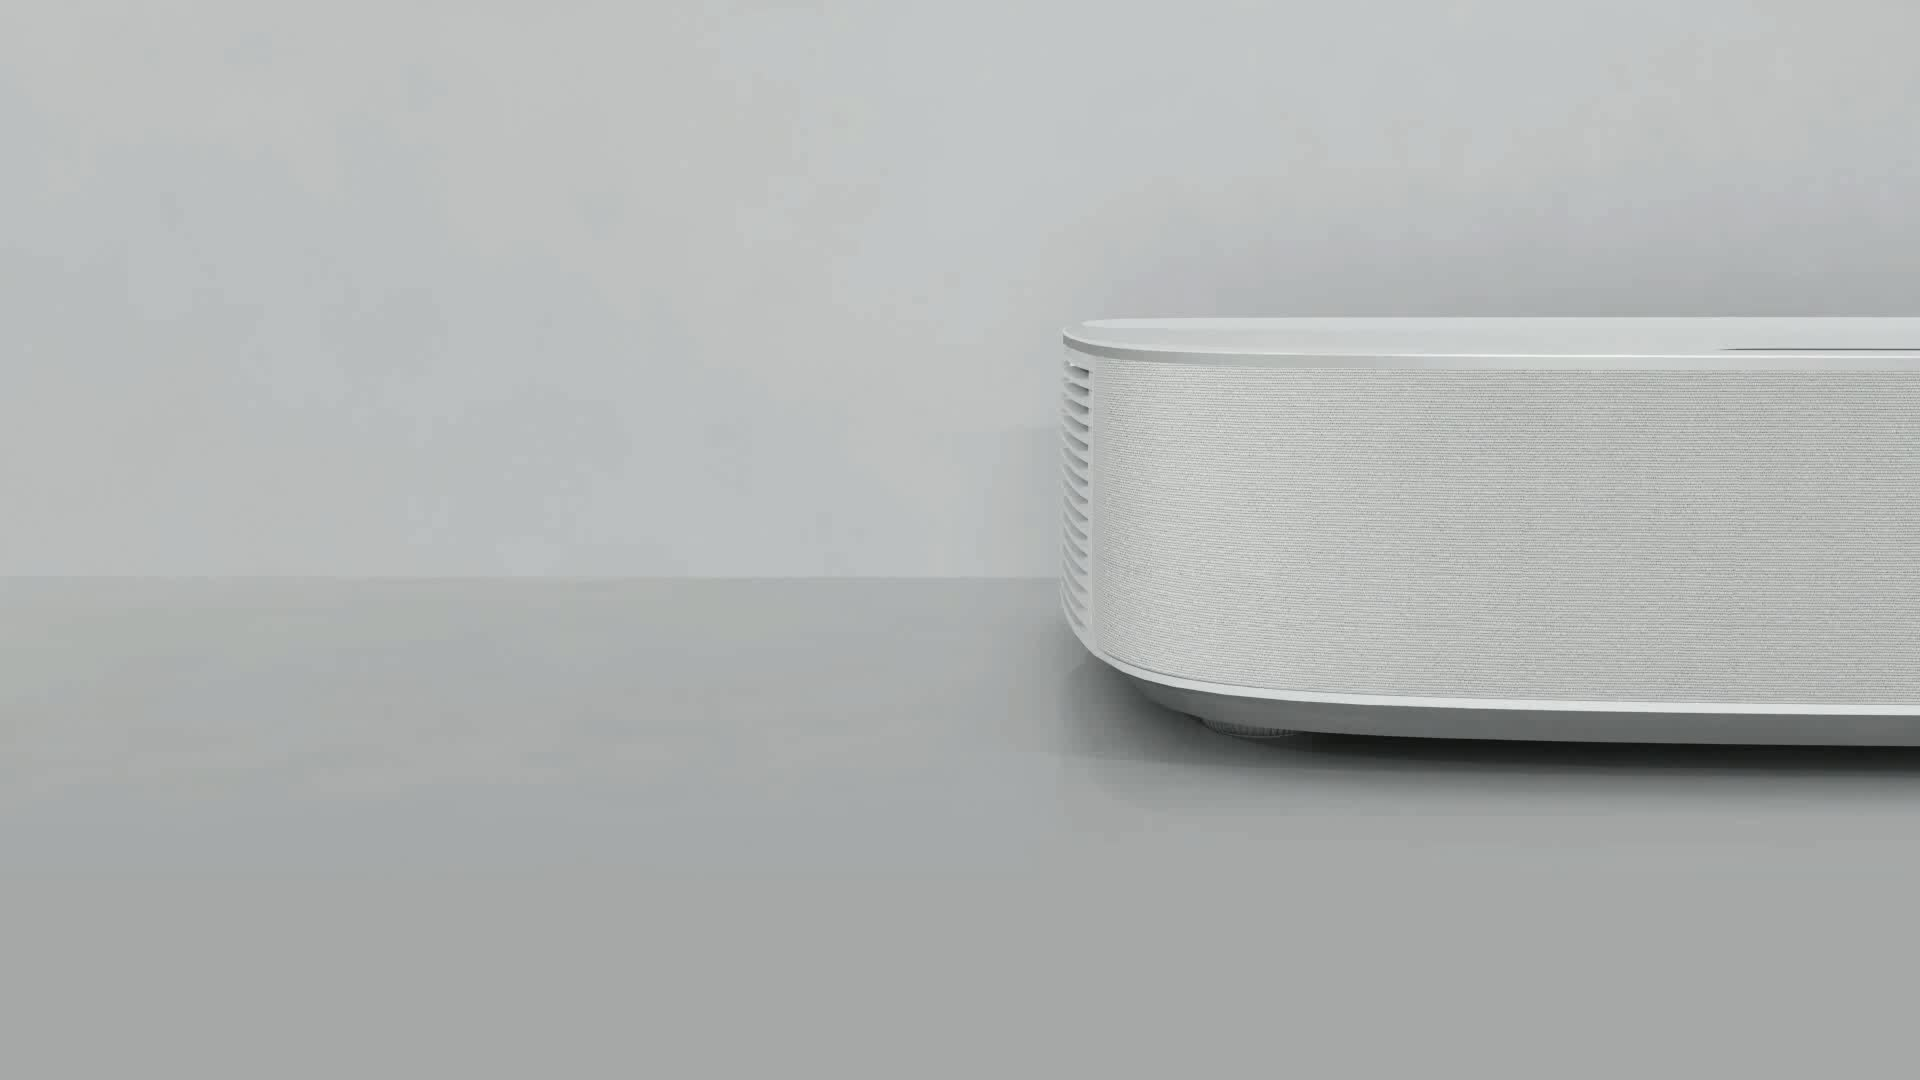 XGIMI Lune 4K Ultra Short Throw Laser Projector with 2200 Ansi Lumens Android WiFi 3D Beamer for Multimedia Home Cinema